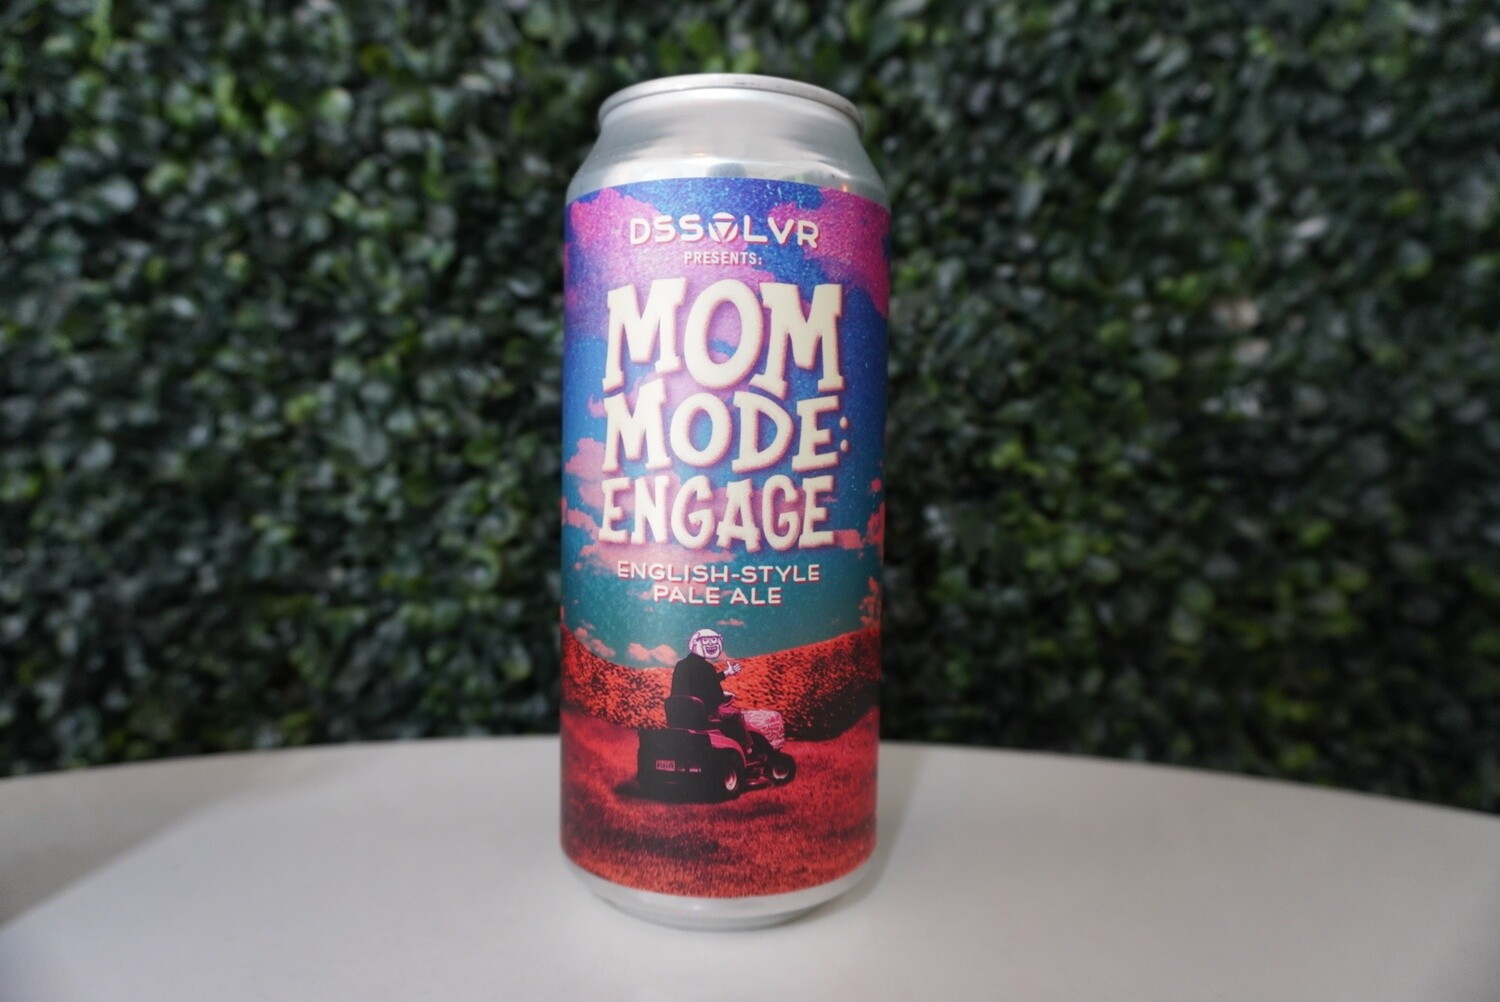 DSSOLVR - Mom Mode: Engage - Pale Ale - 3.9% ABV - 16 oz Can